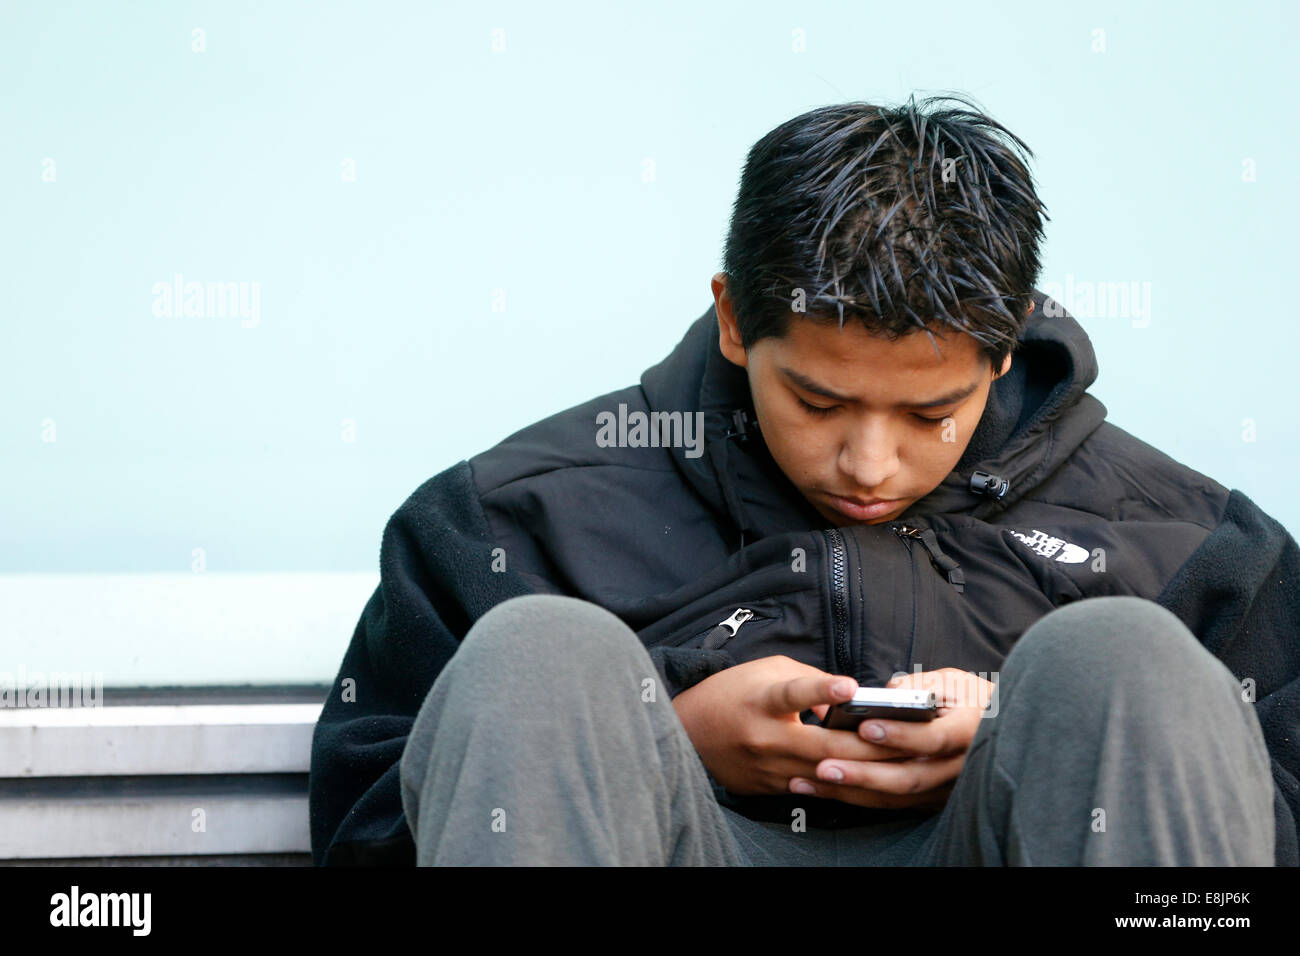 Mobile phone user - Stock Image